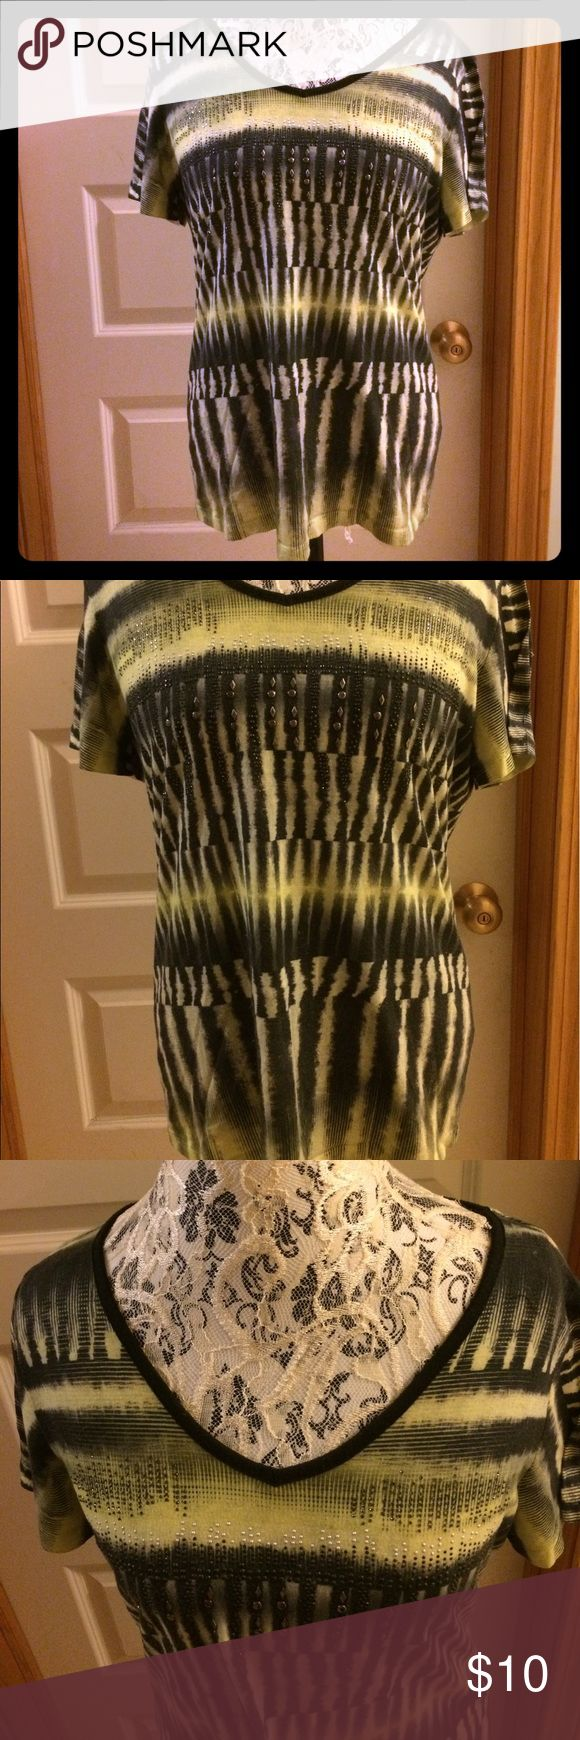 Unique t shirt Unique t-shirt with cool pattern and rhinestone/jeweling details on front.  No known flaws.  Only problem is me- I can't tell if the top is green or yellow lol- bright shade of one of those at least. Christopher & Banks Tops Tees - Short Sleeve